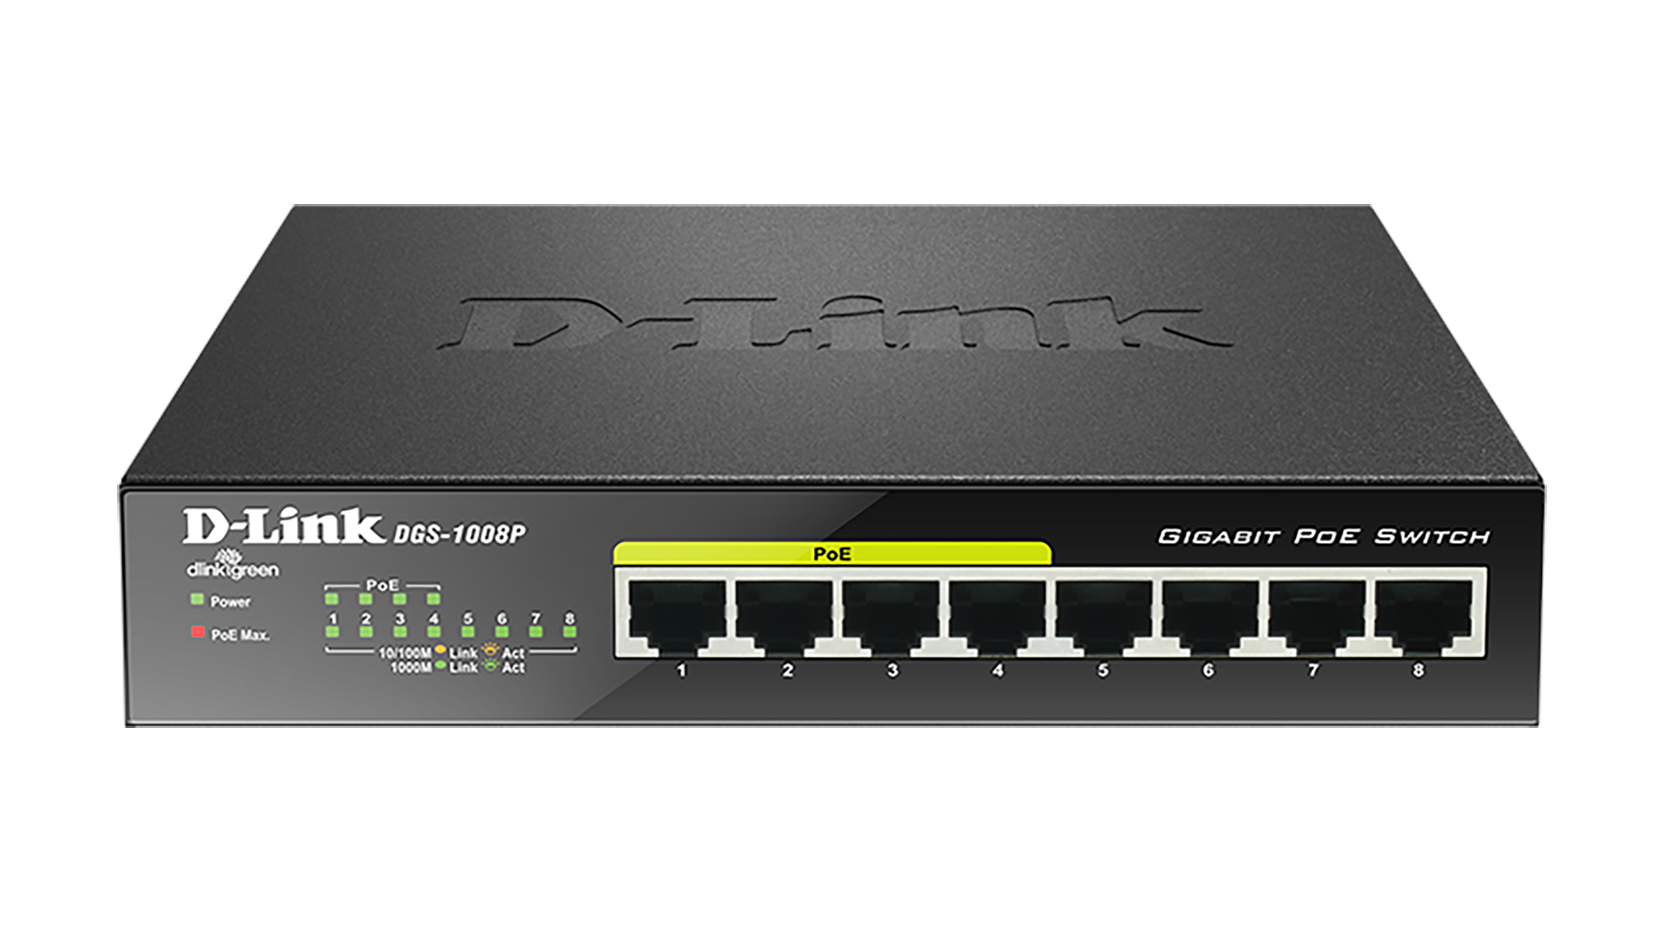 D-Link DGS-1008P/E POE Unmanaged Gigabit Switch